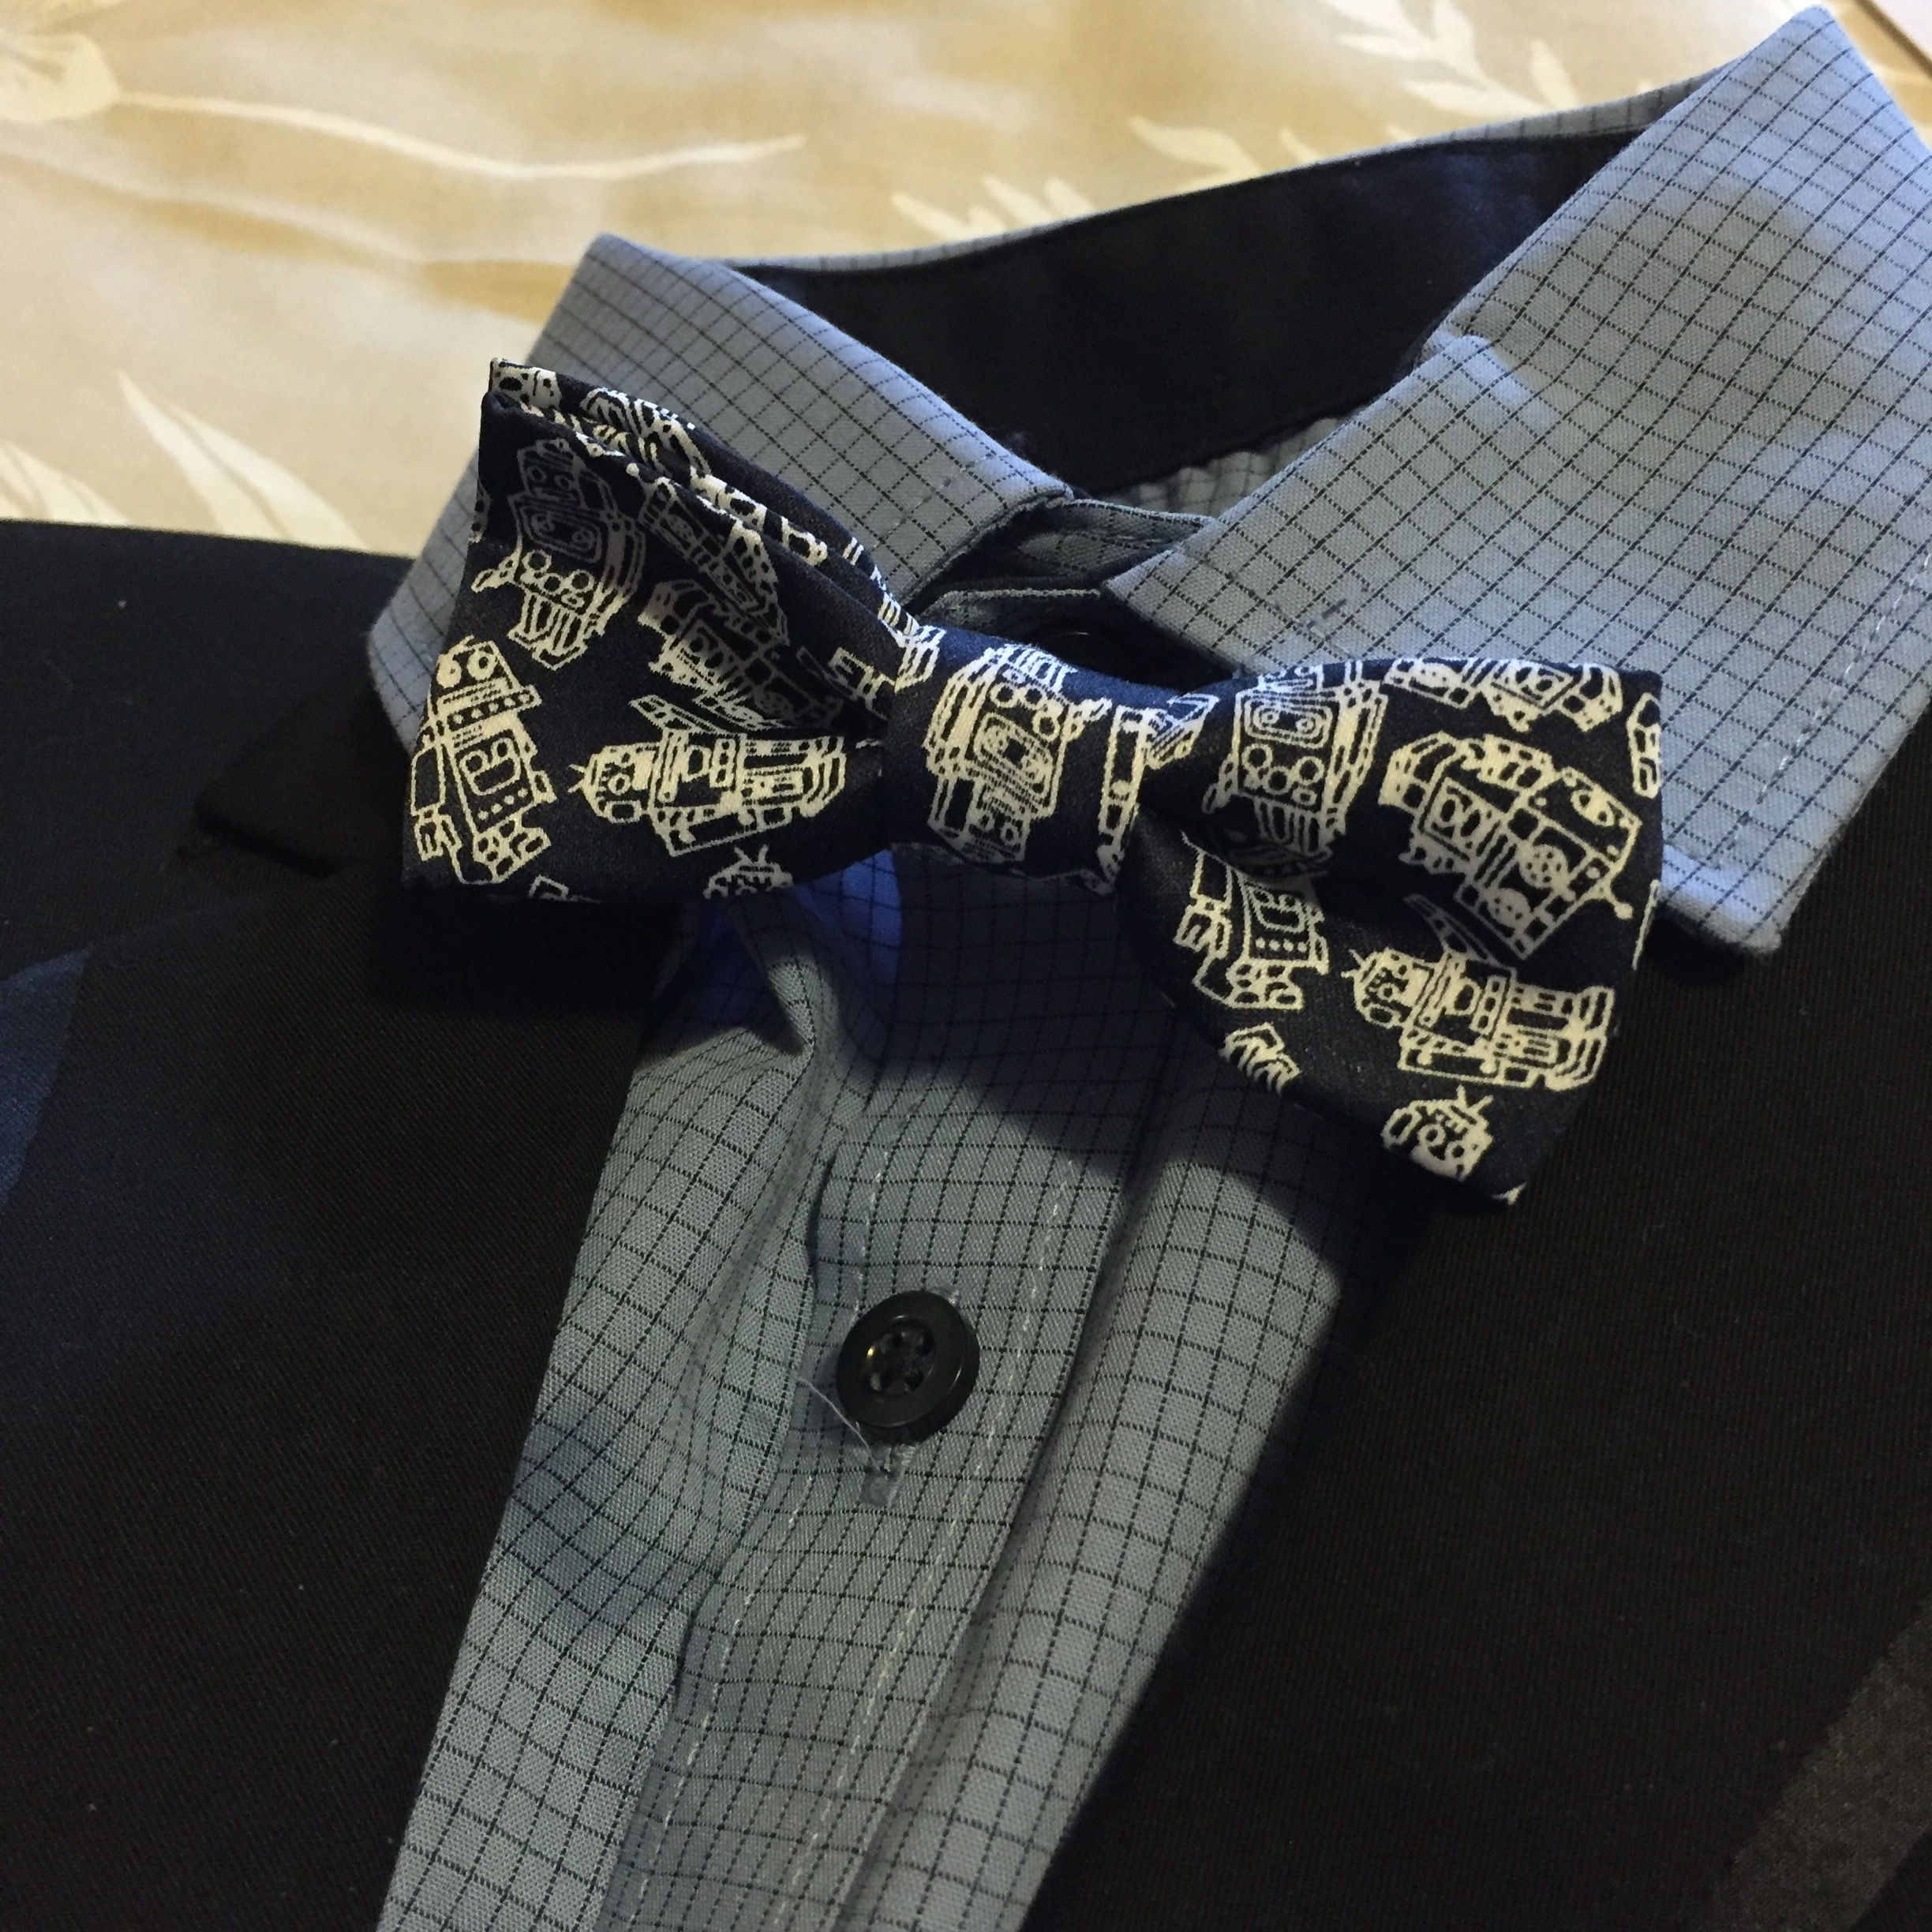 The bow tie has robots on it. ROBOTS!